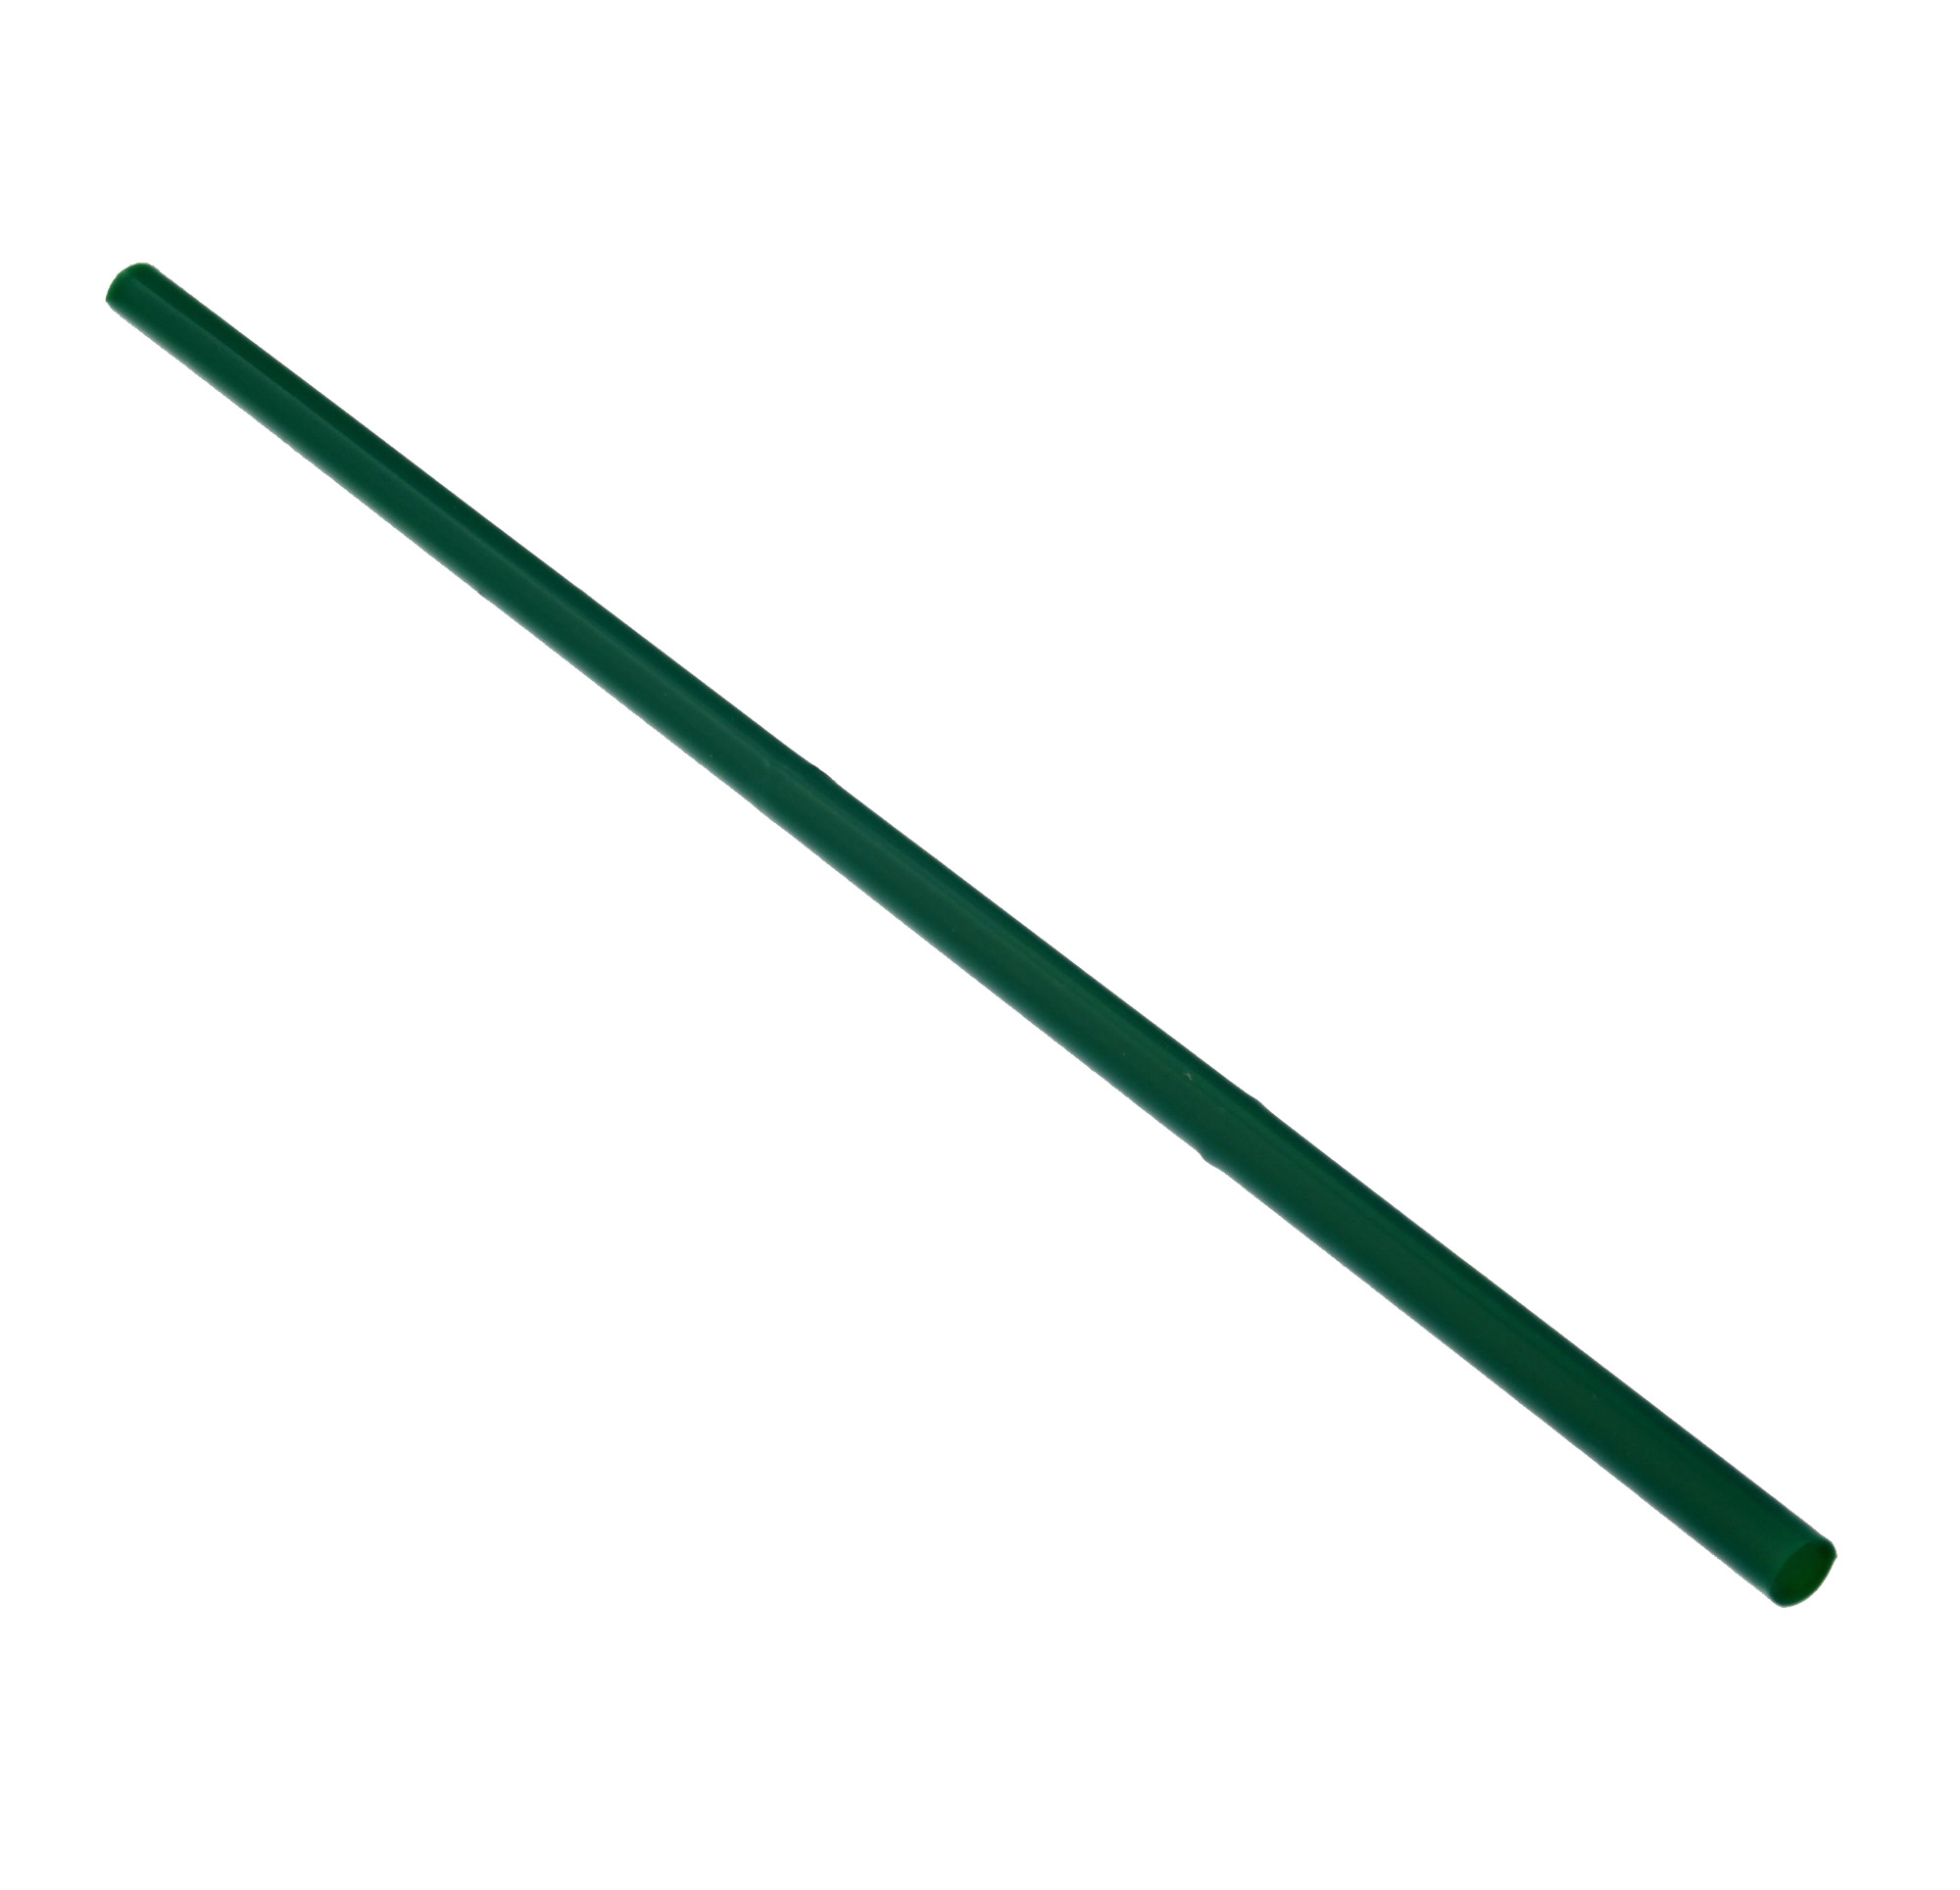 Freshii Compostable Straws